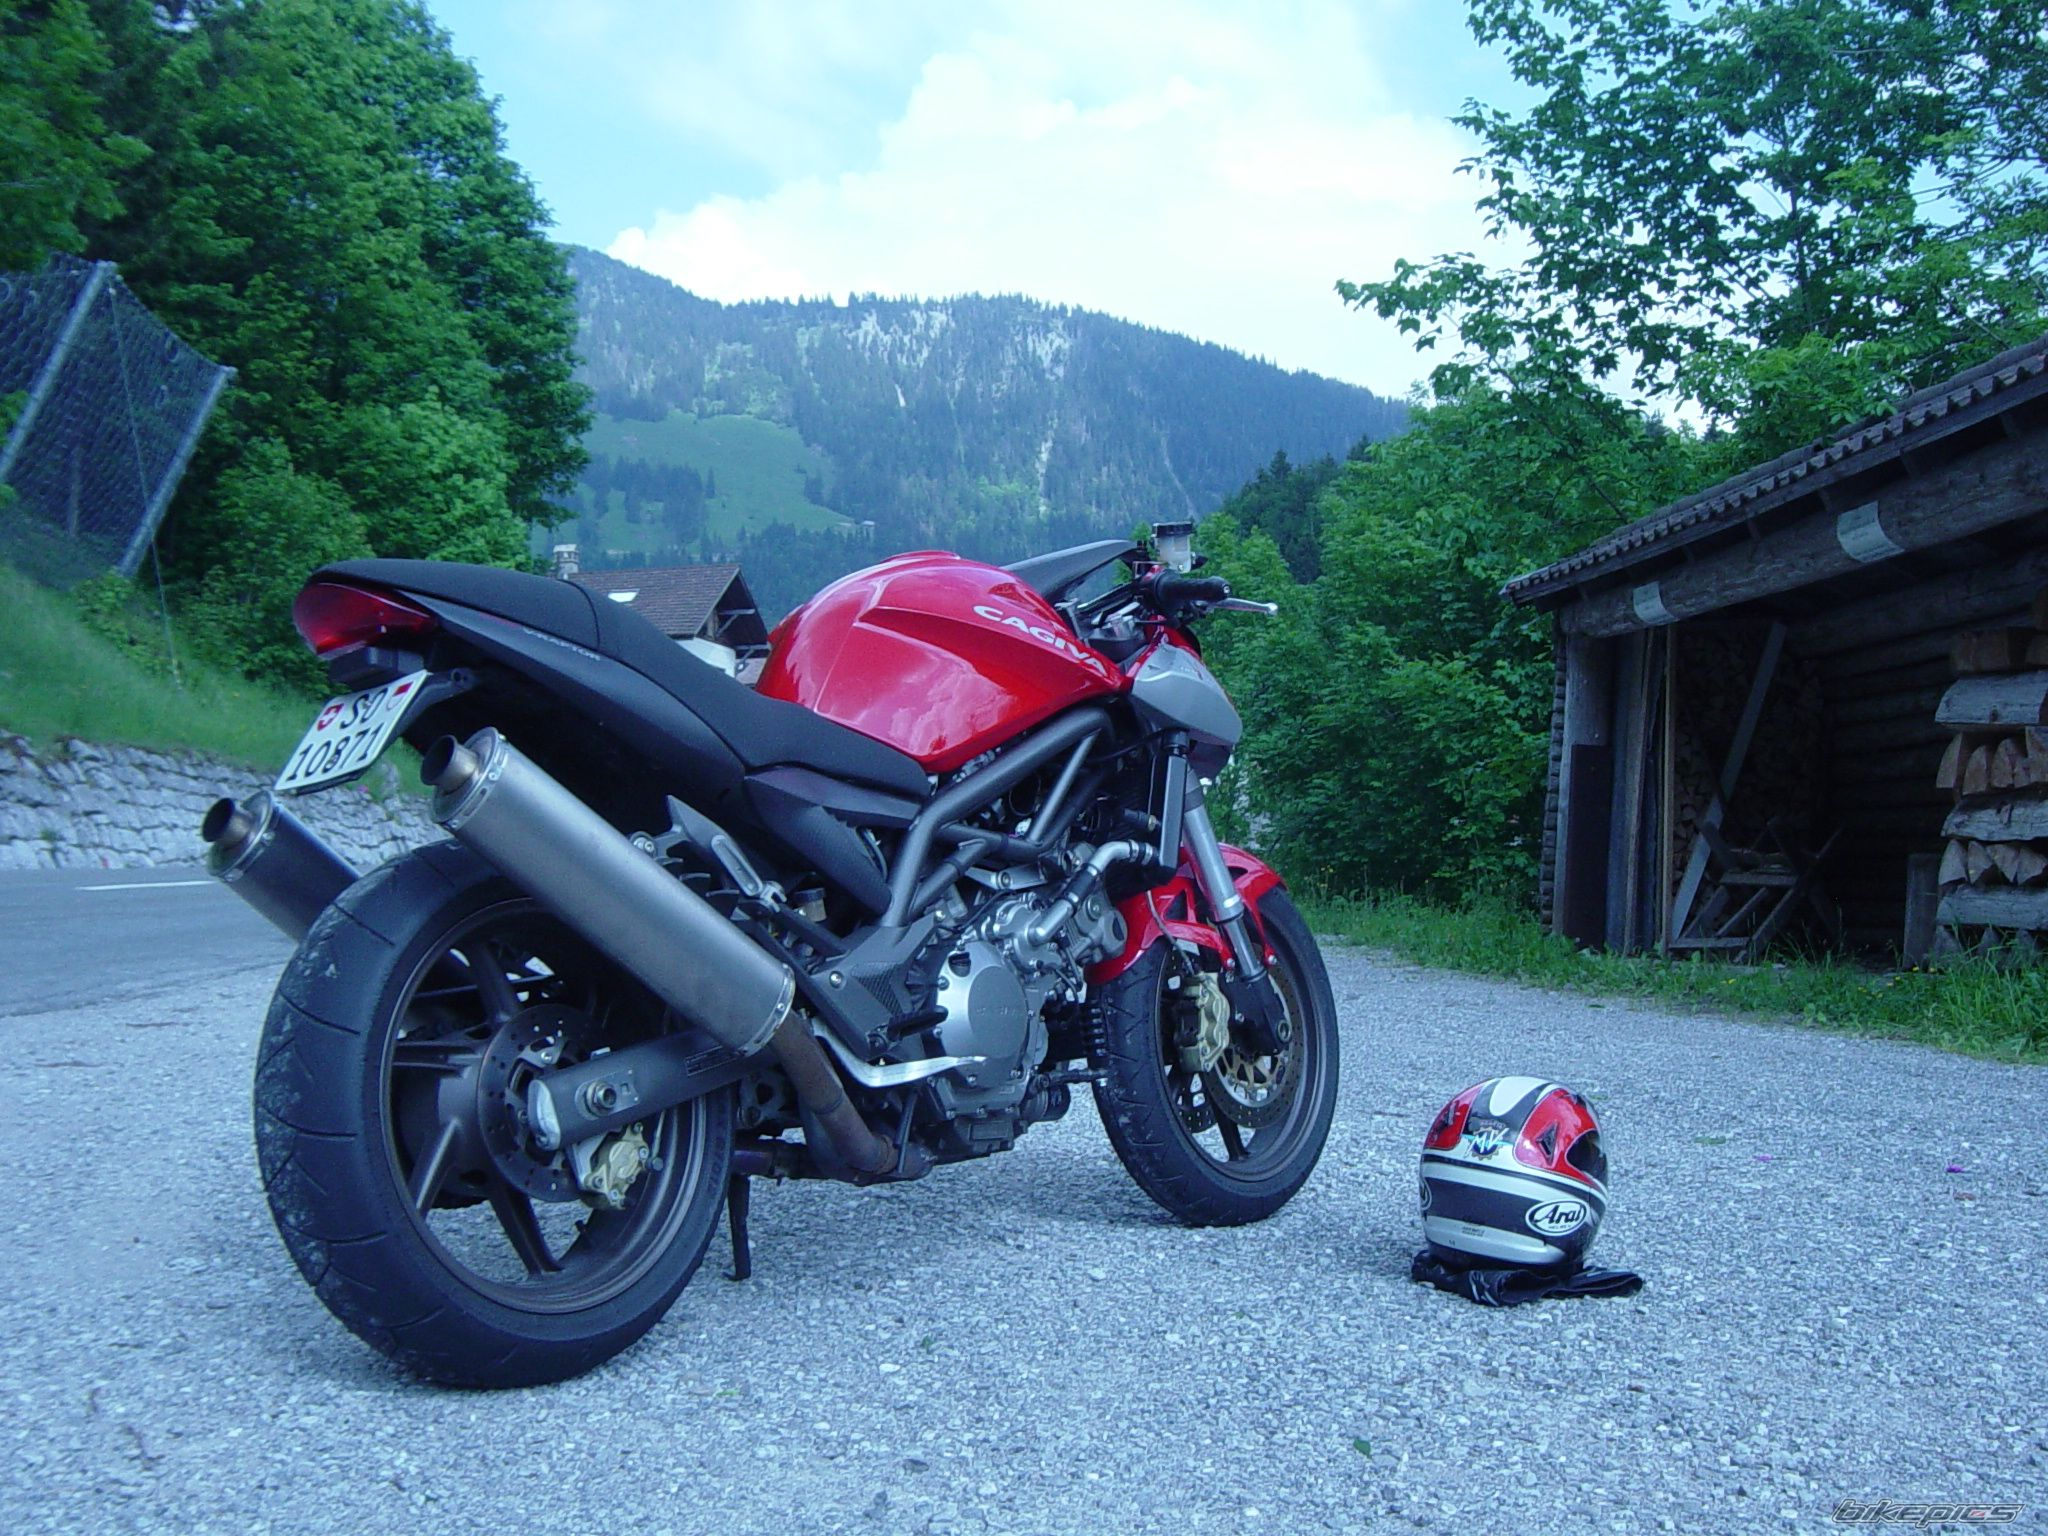 Cagiva Xtra Raptor 1000 images #68019